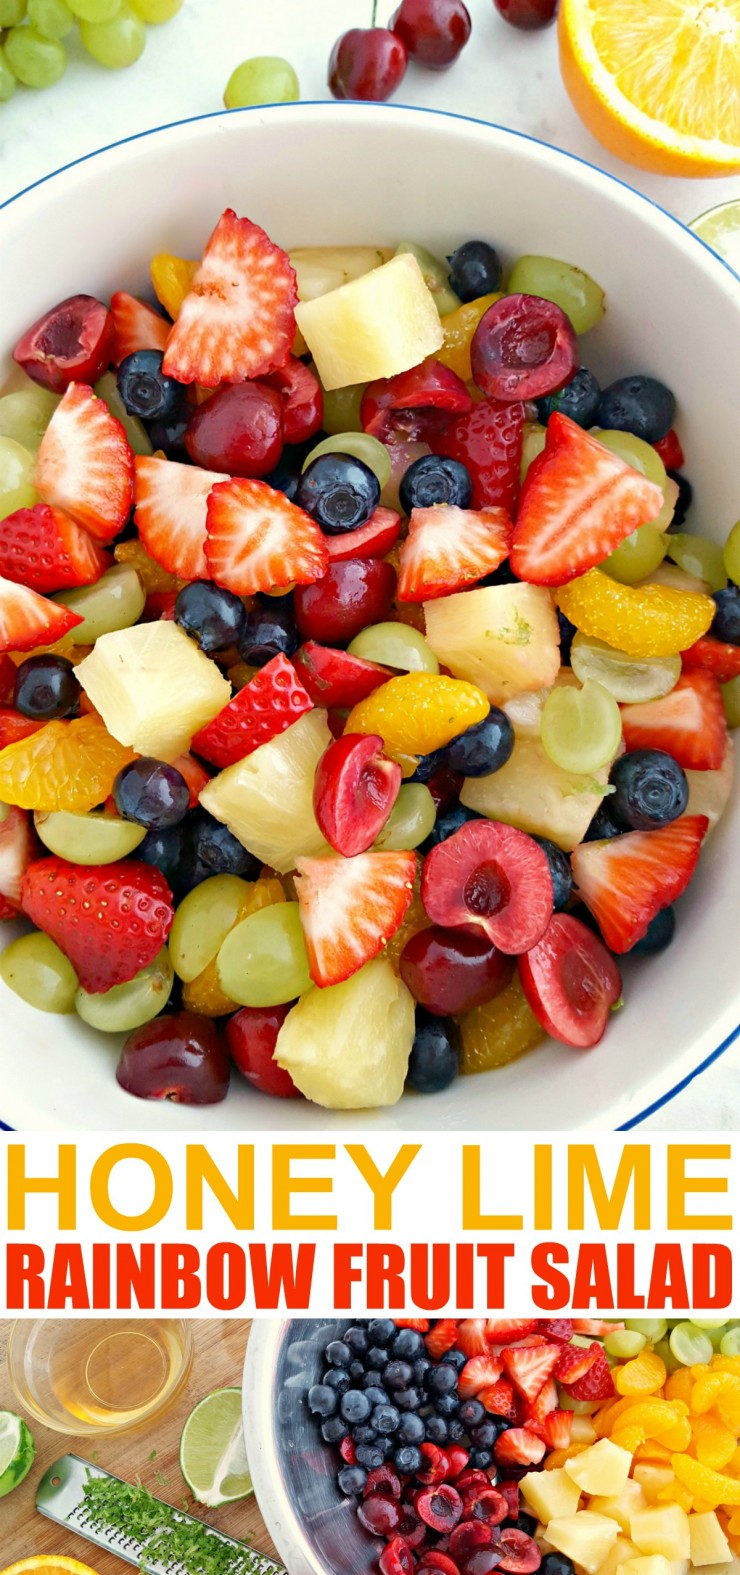 This Honey Lime Rainbow Fruit Salad is a fresh and healthy dessert. Fruit salads are a summer staple and the honey lime dressing on this fruit salad is absolute perfection.